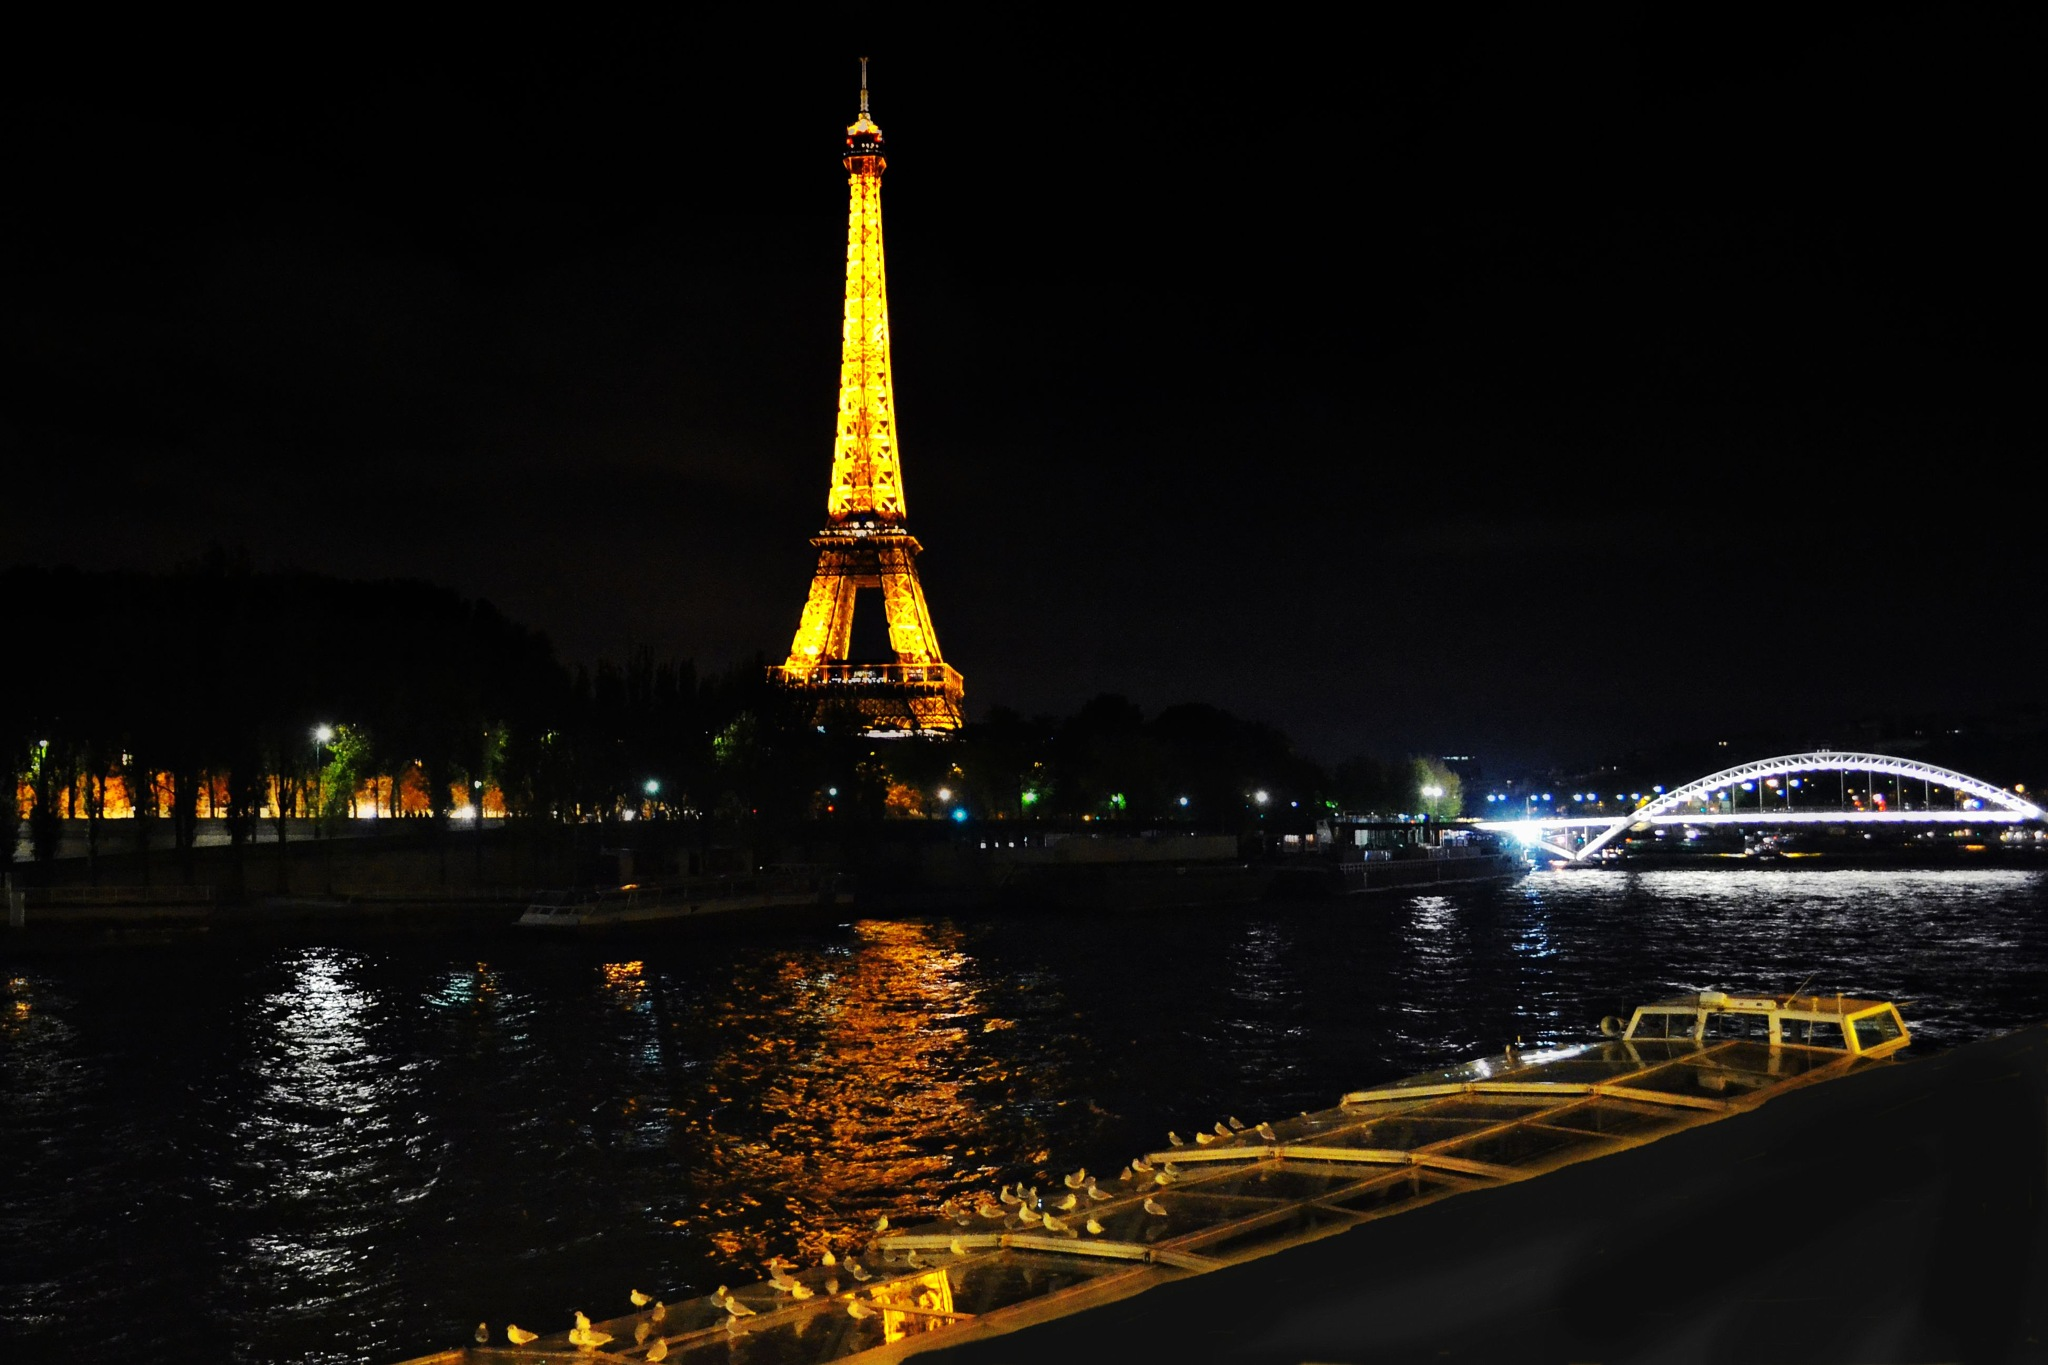 The Eiffel Tower by night by Fred Matos